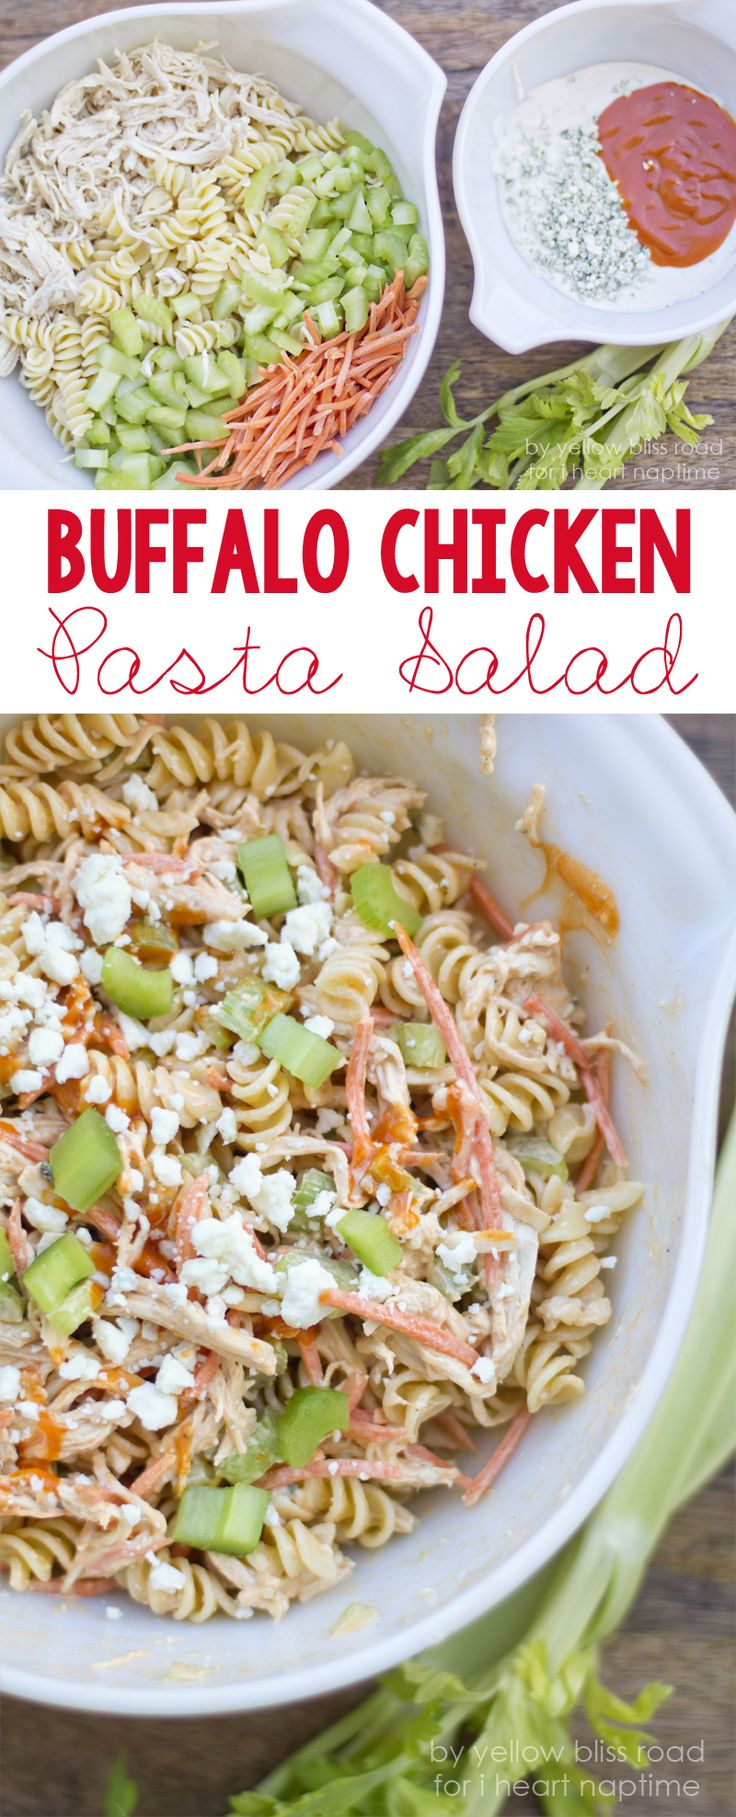 Love buffalo wings and pasta salad? Perfect recipe for you: Buffalo Chicken Pasta Salad!